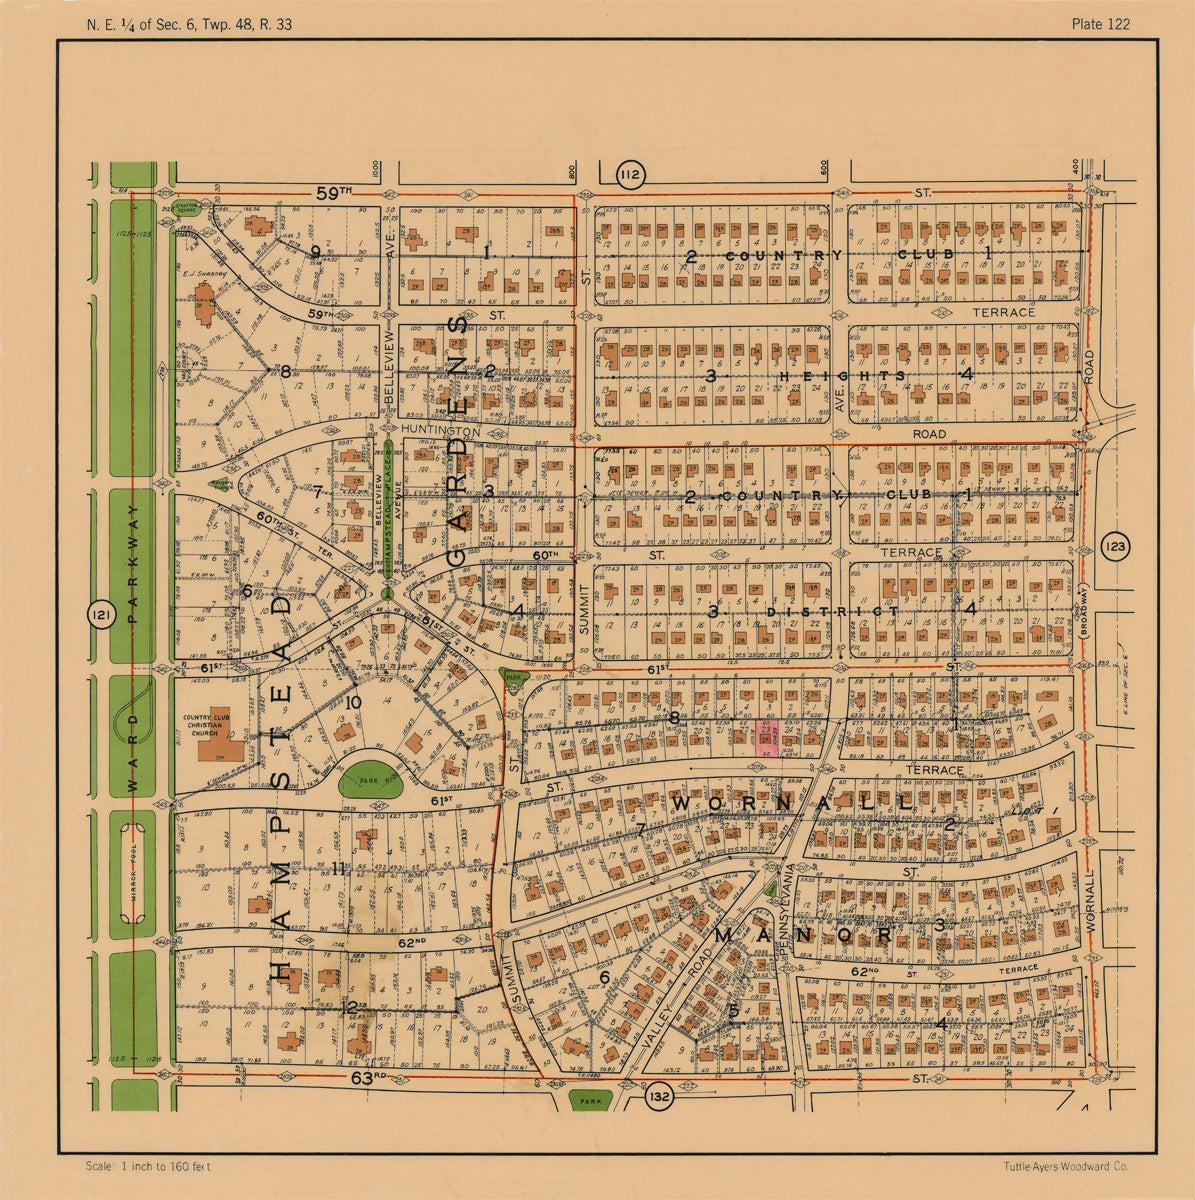 Kansas City 1925 Neighborhood Map - Plate #122 59th-63rd Ward Pkwy-Wornall